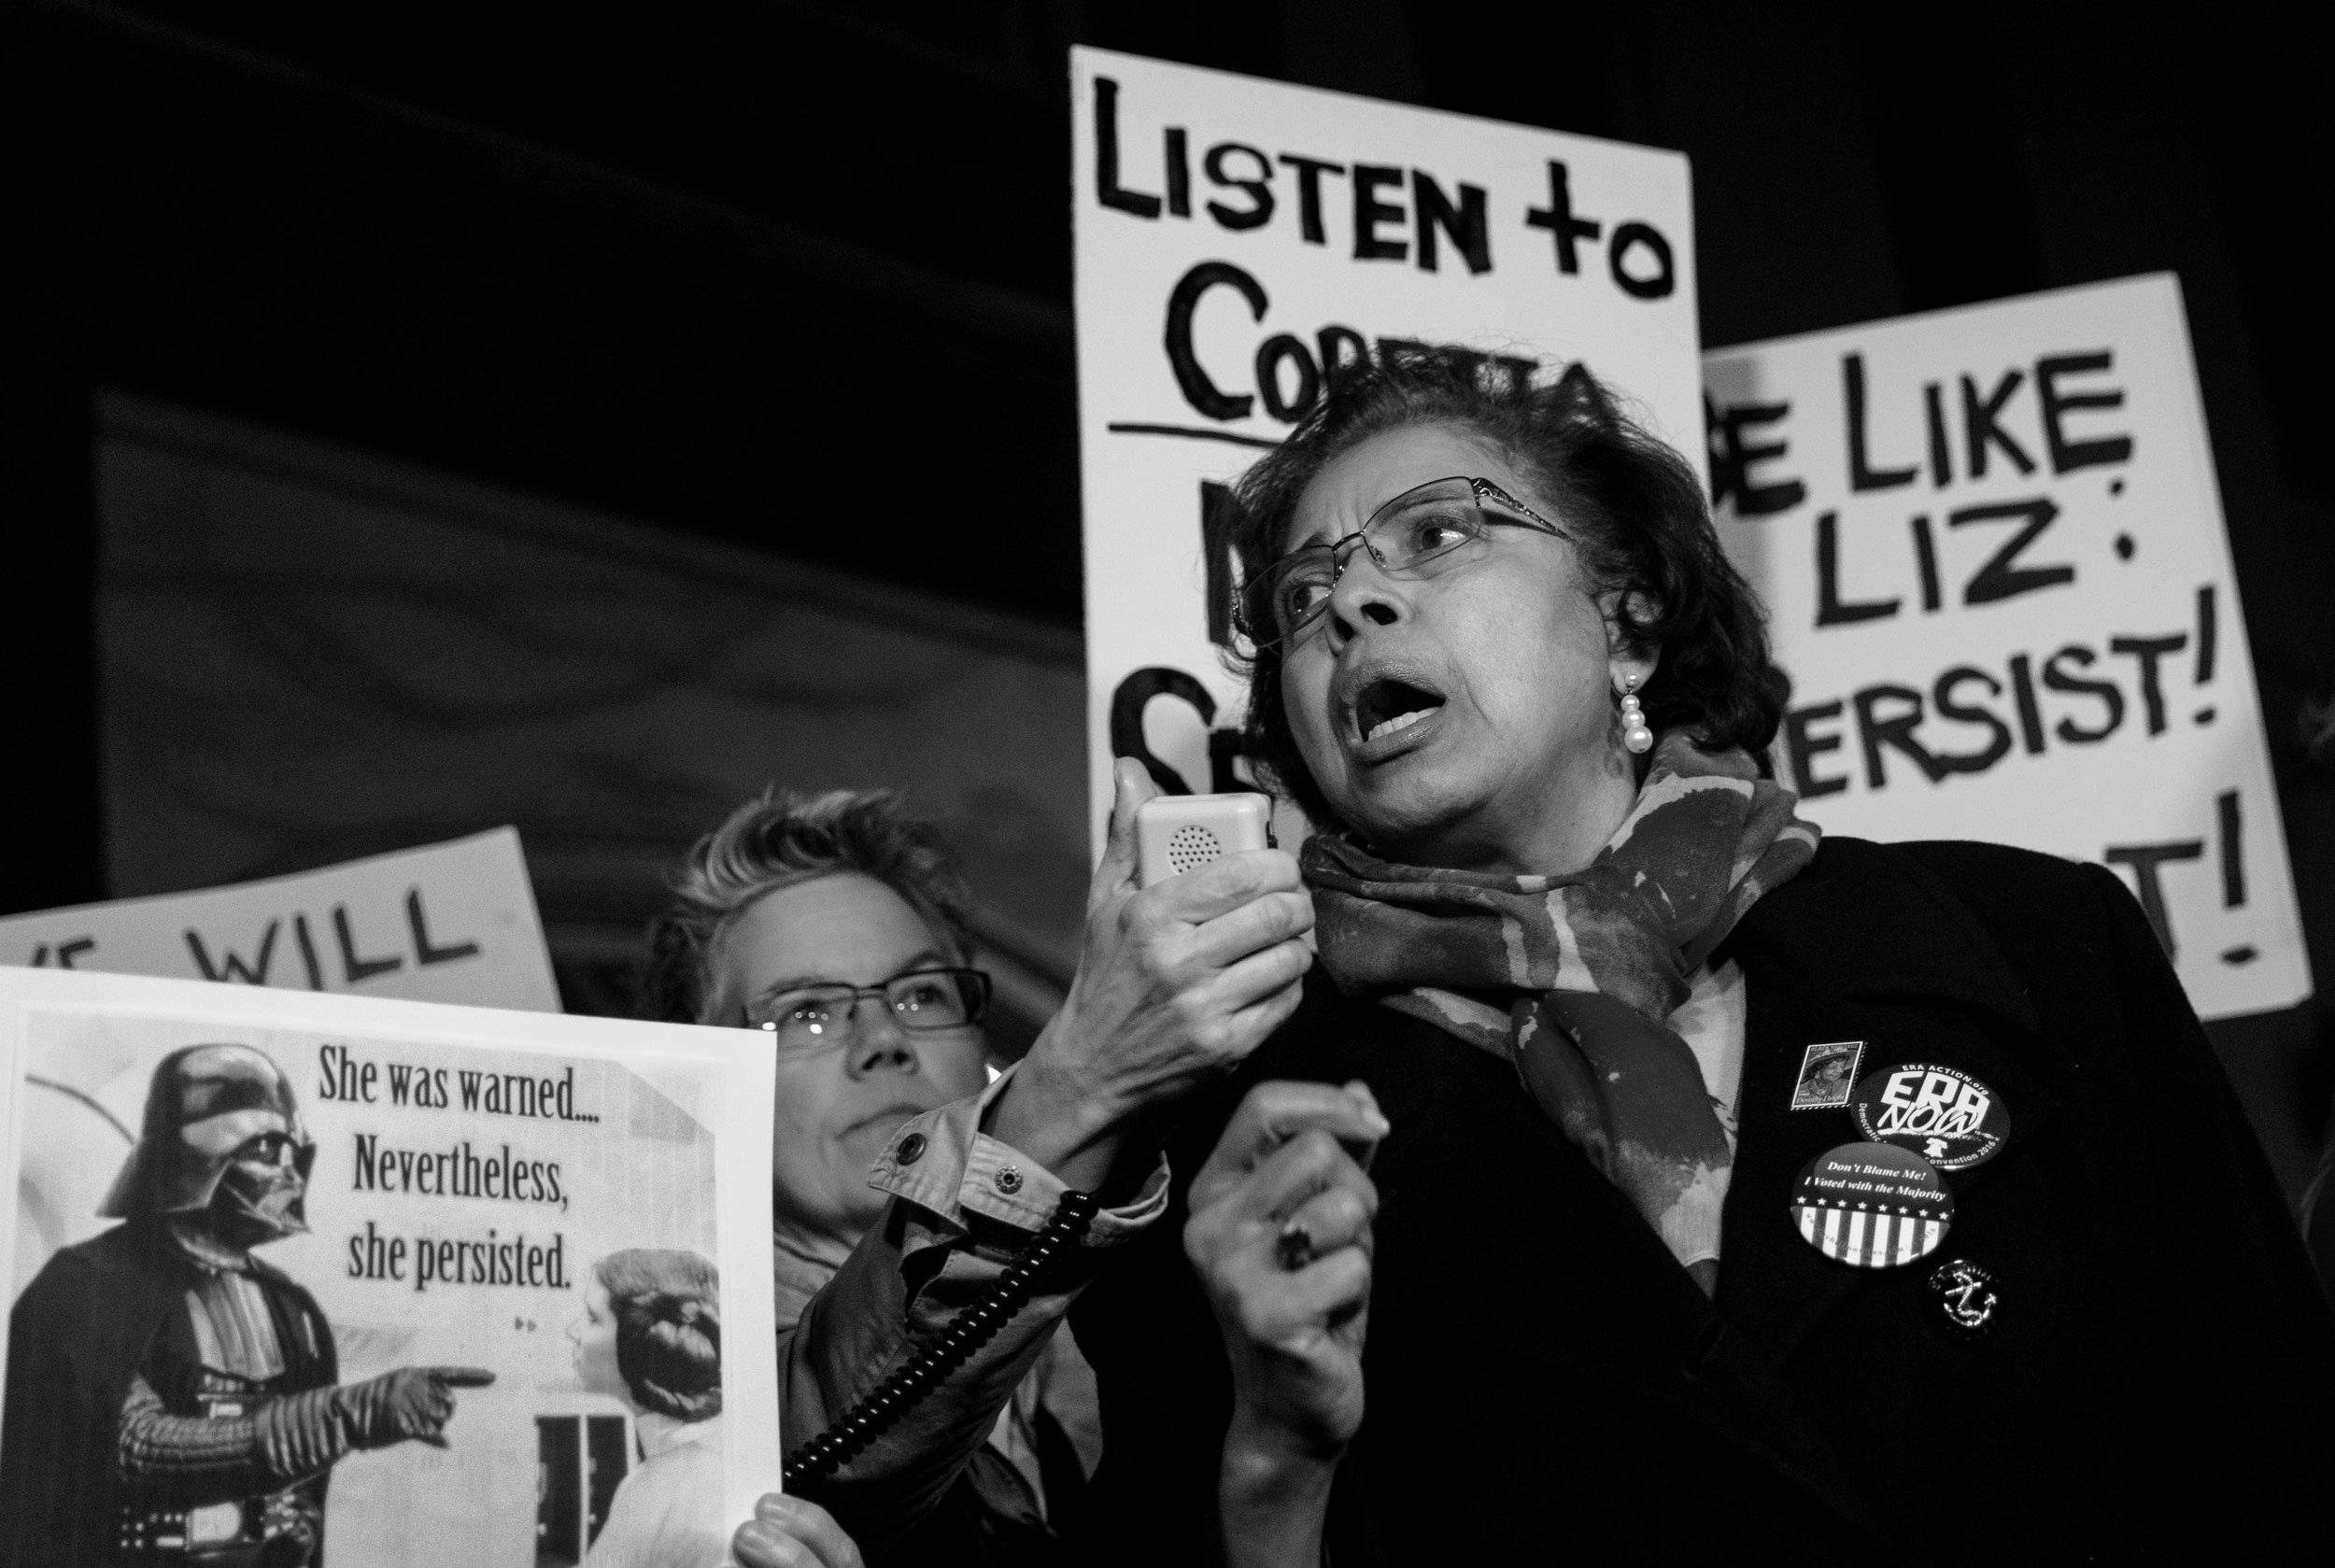 Dr. E. Faye Williams, National President/CEO of the National Congress of Black Women, reads from Coretta Scott King's letter outside Mitch McConnell's house on Capitol Hill